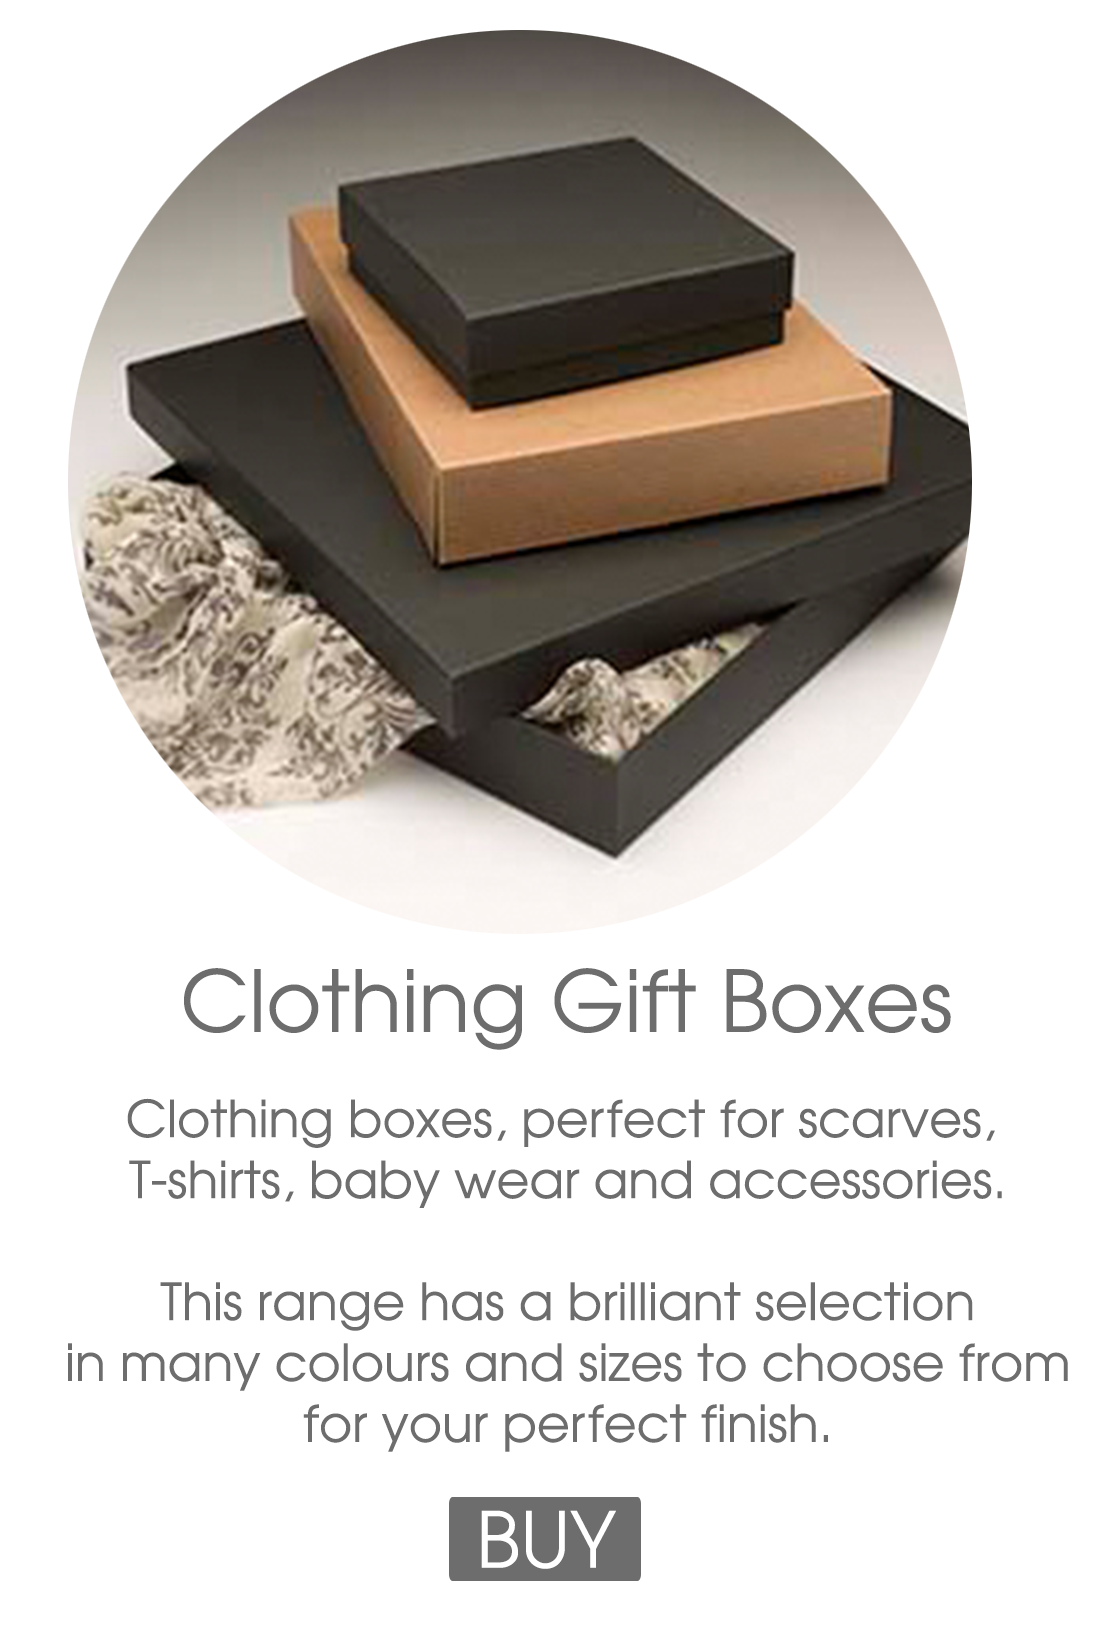 Wholesale gift boxes jewellery gift box retail packaging tiny wholesale gift boxes jewellery gift box retail packaging tiny box company negle Image collections